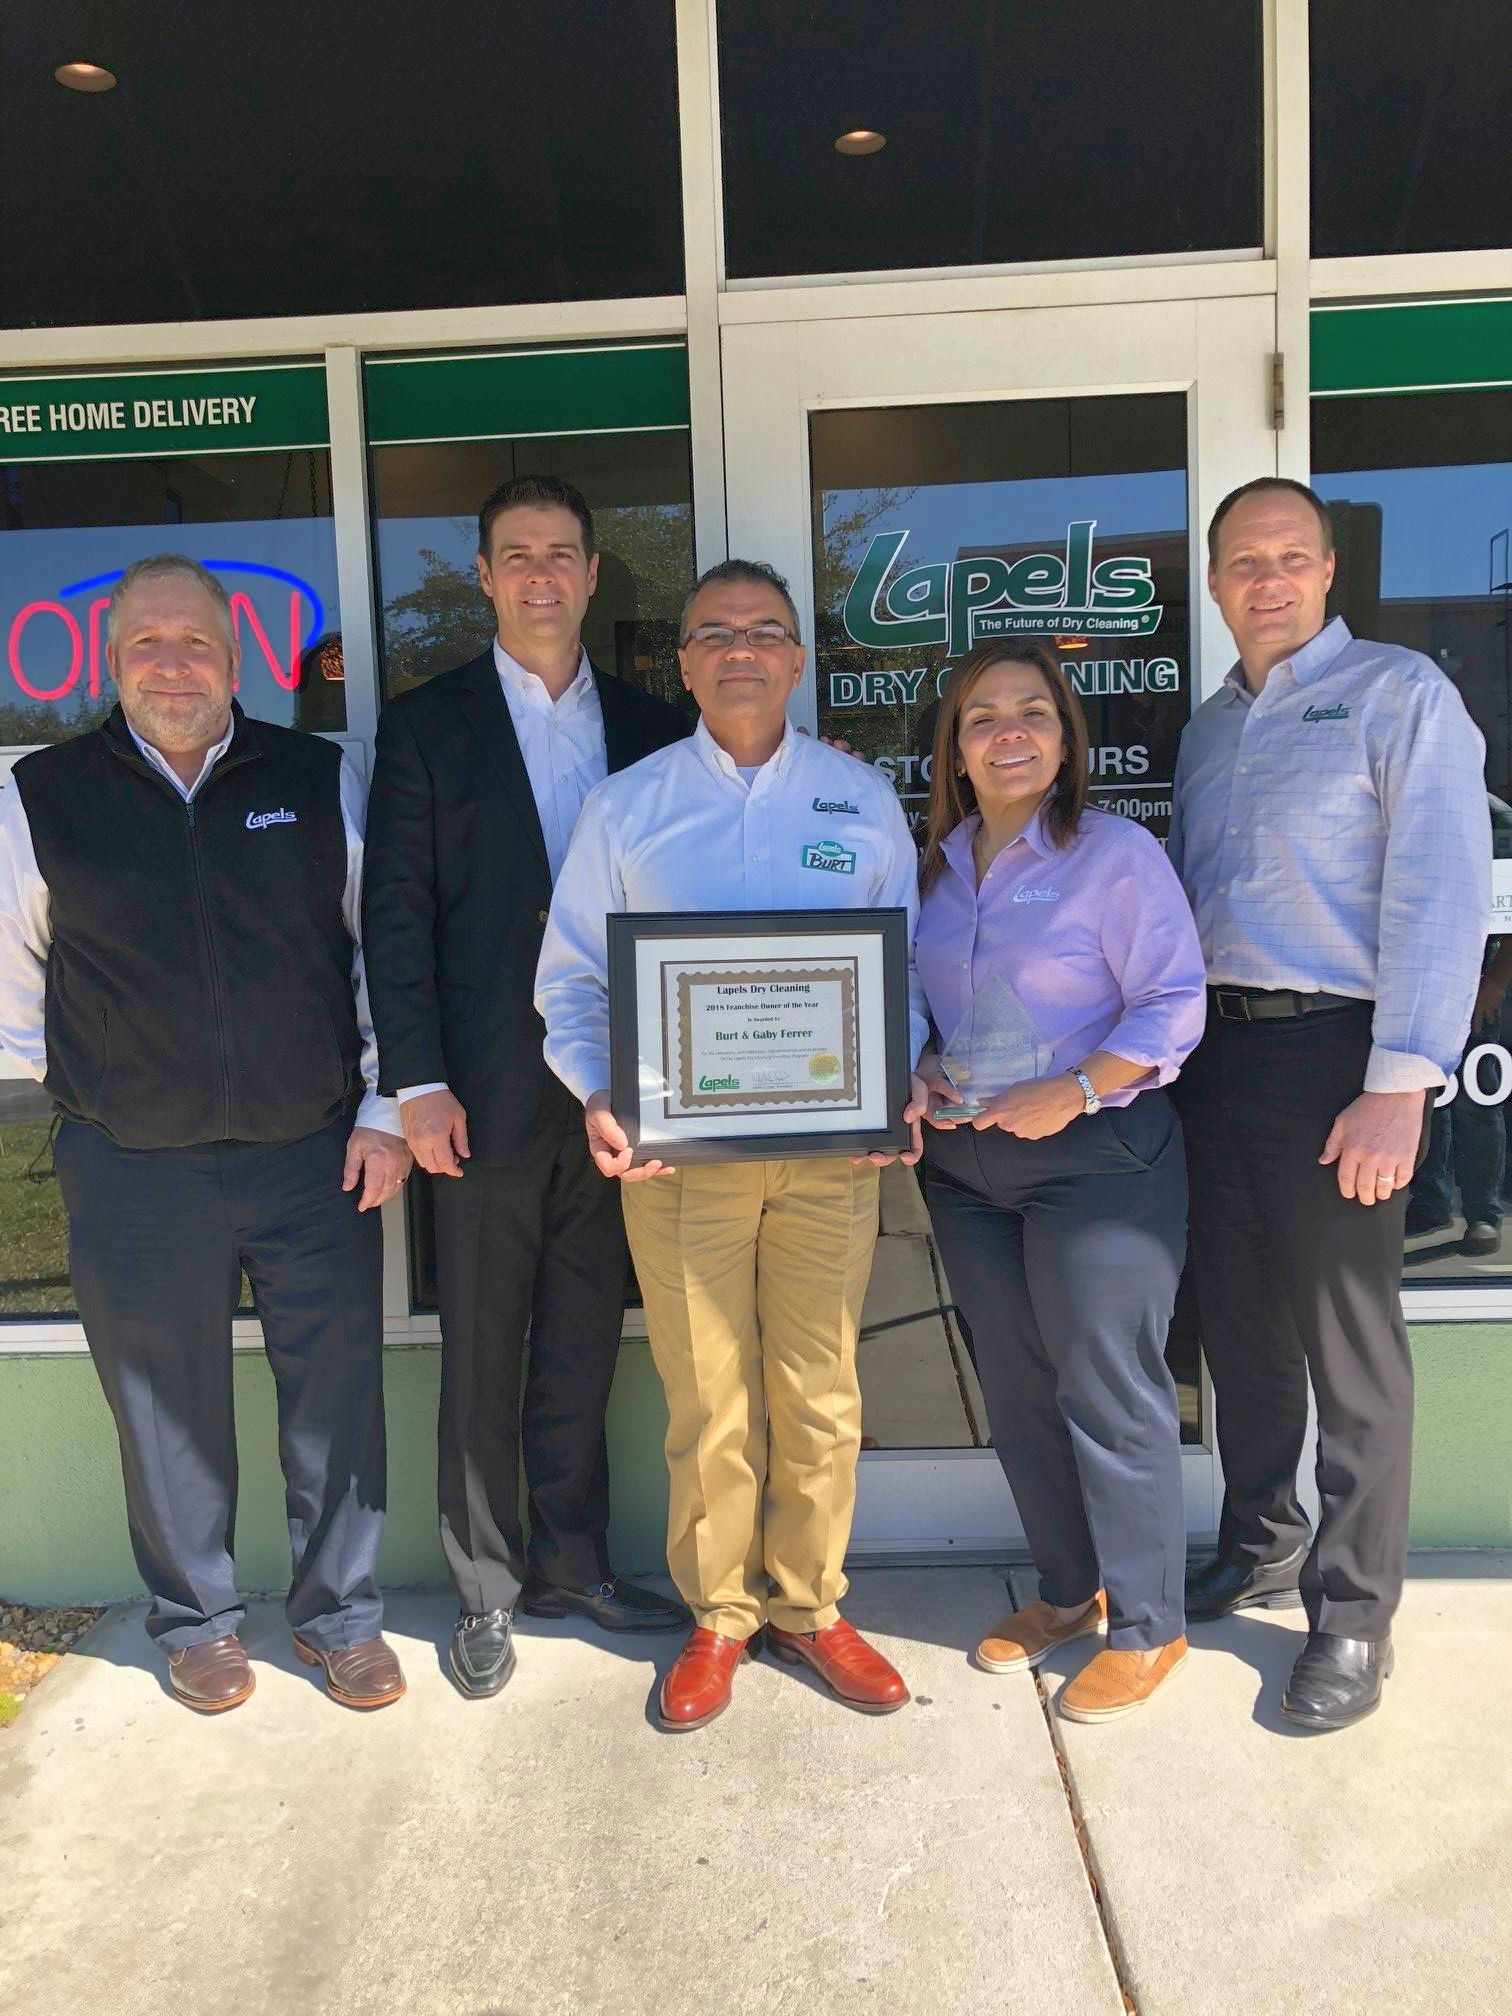 Burt Ferrer named Lapels Dry Cleaning Franchise Owner of the Year